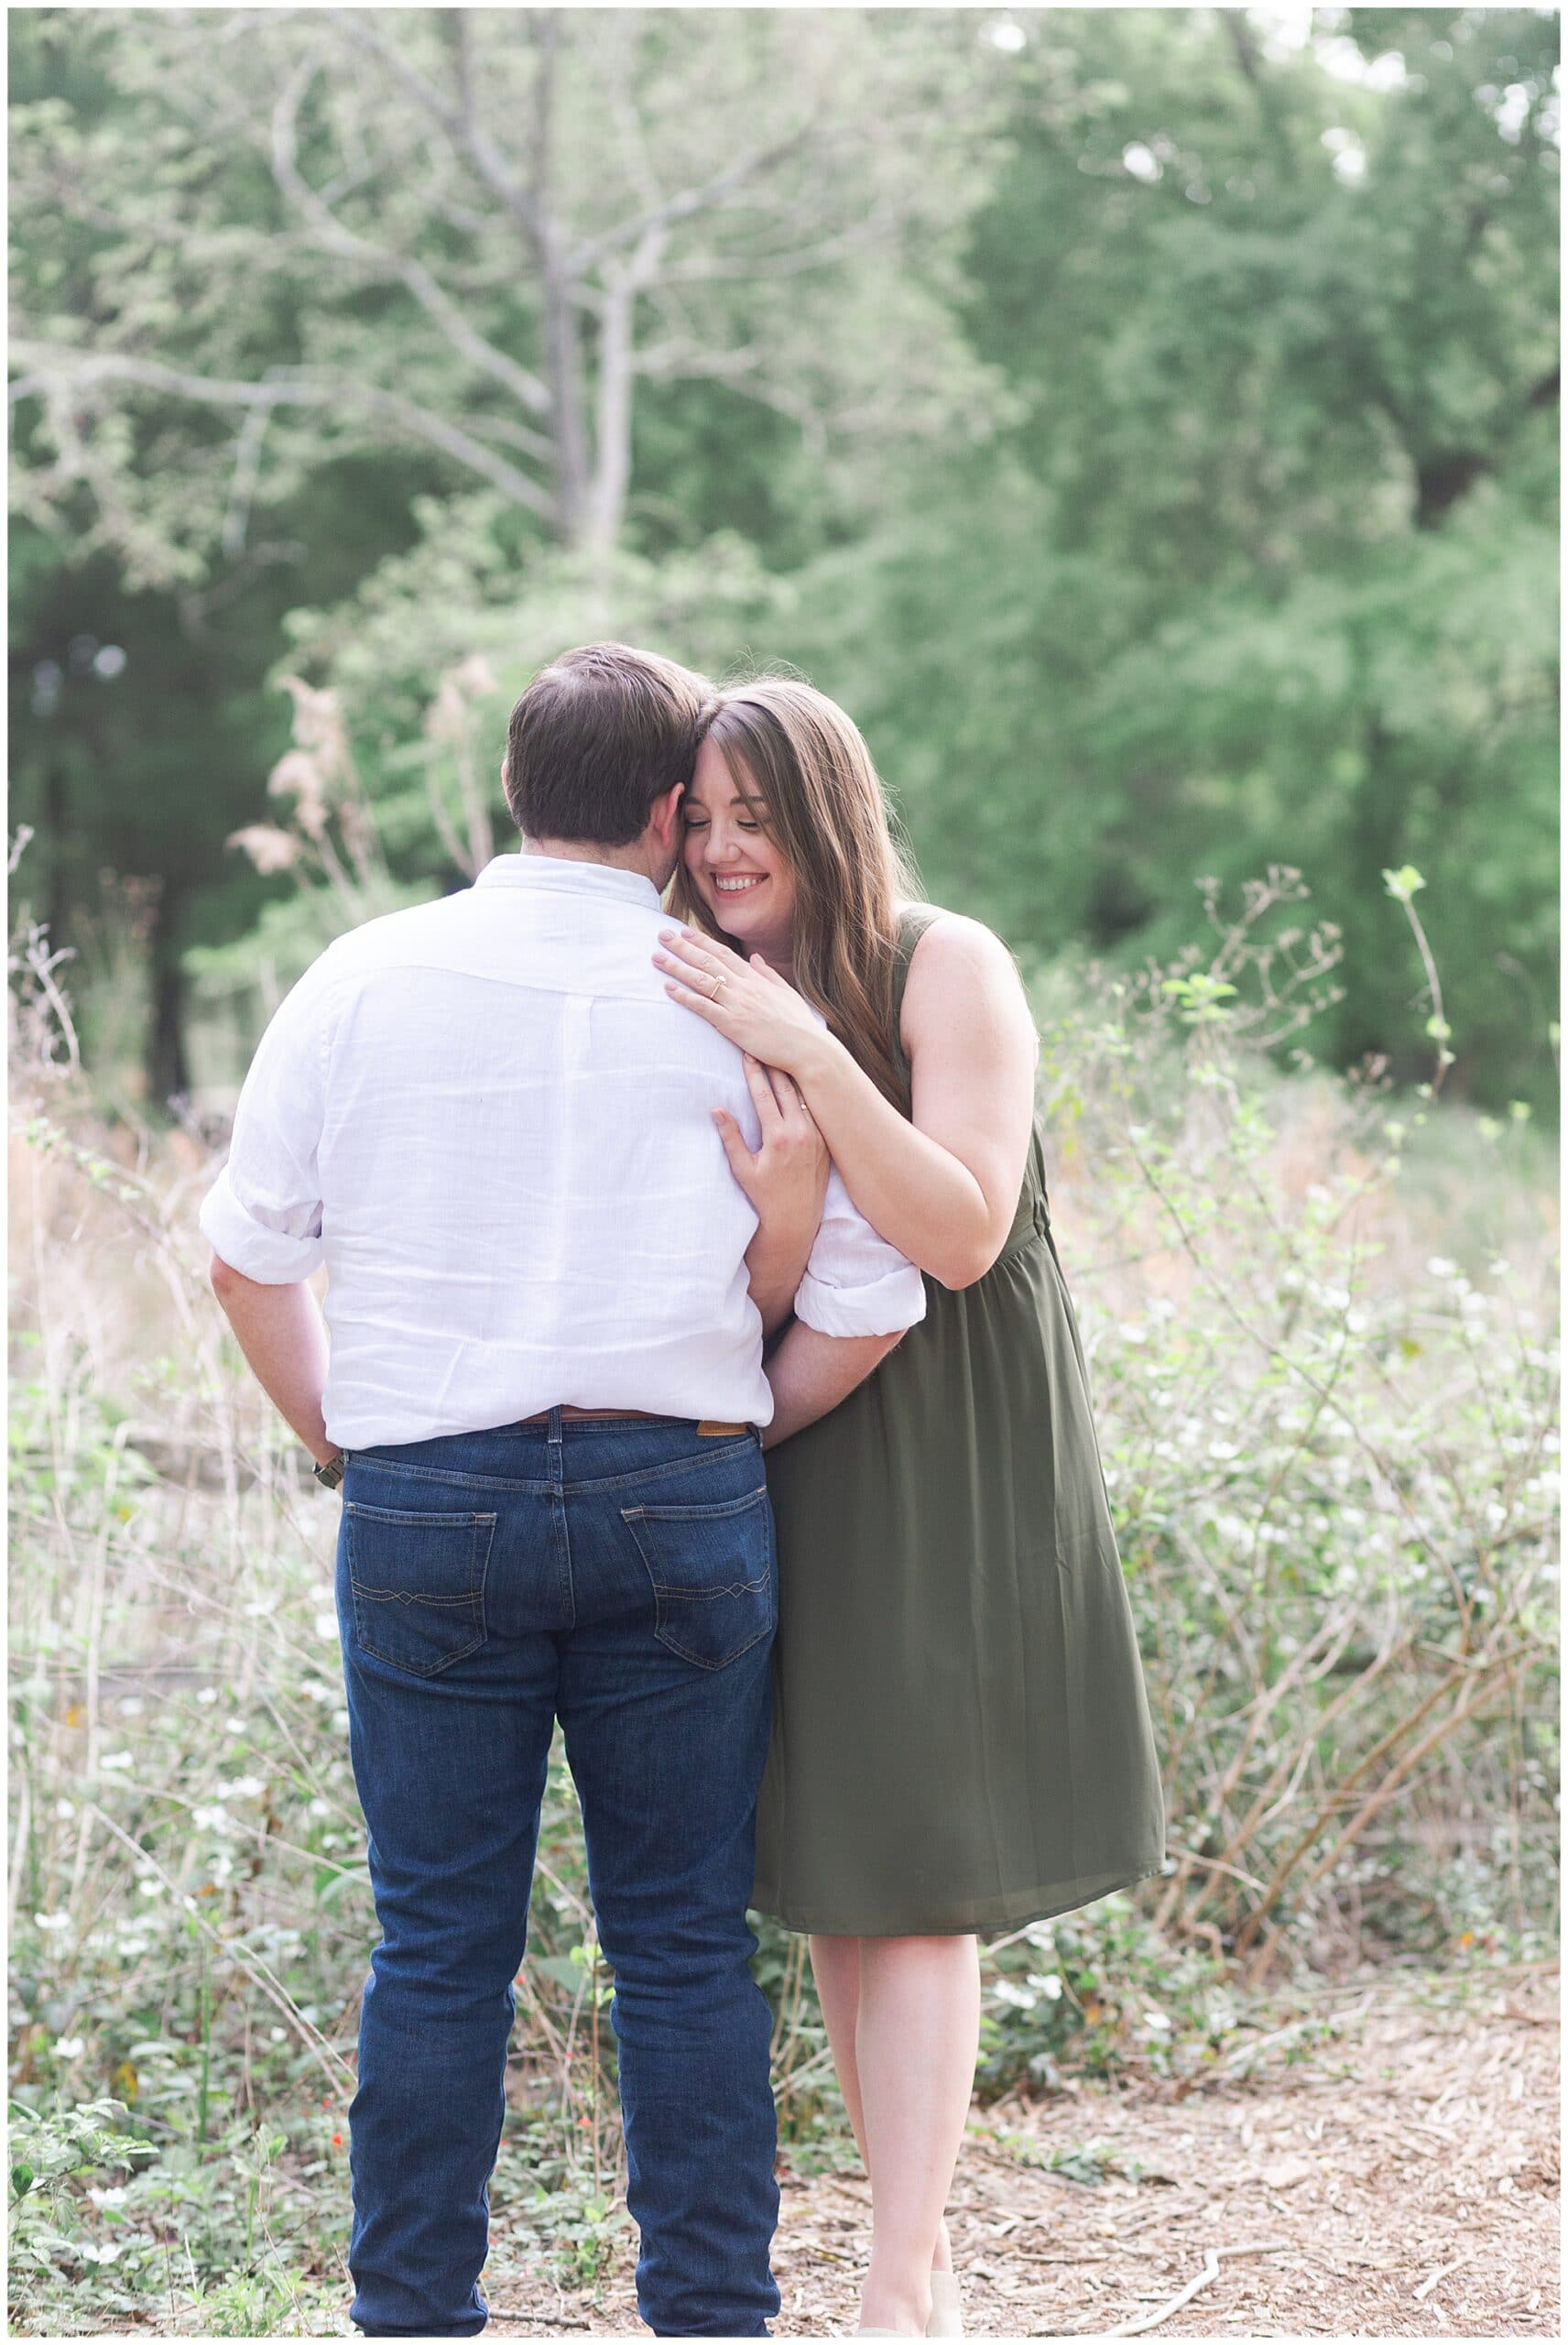 Houston Arboretum and Nature Center Engagement Session with Jaquelyn and Justin